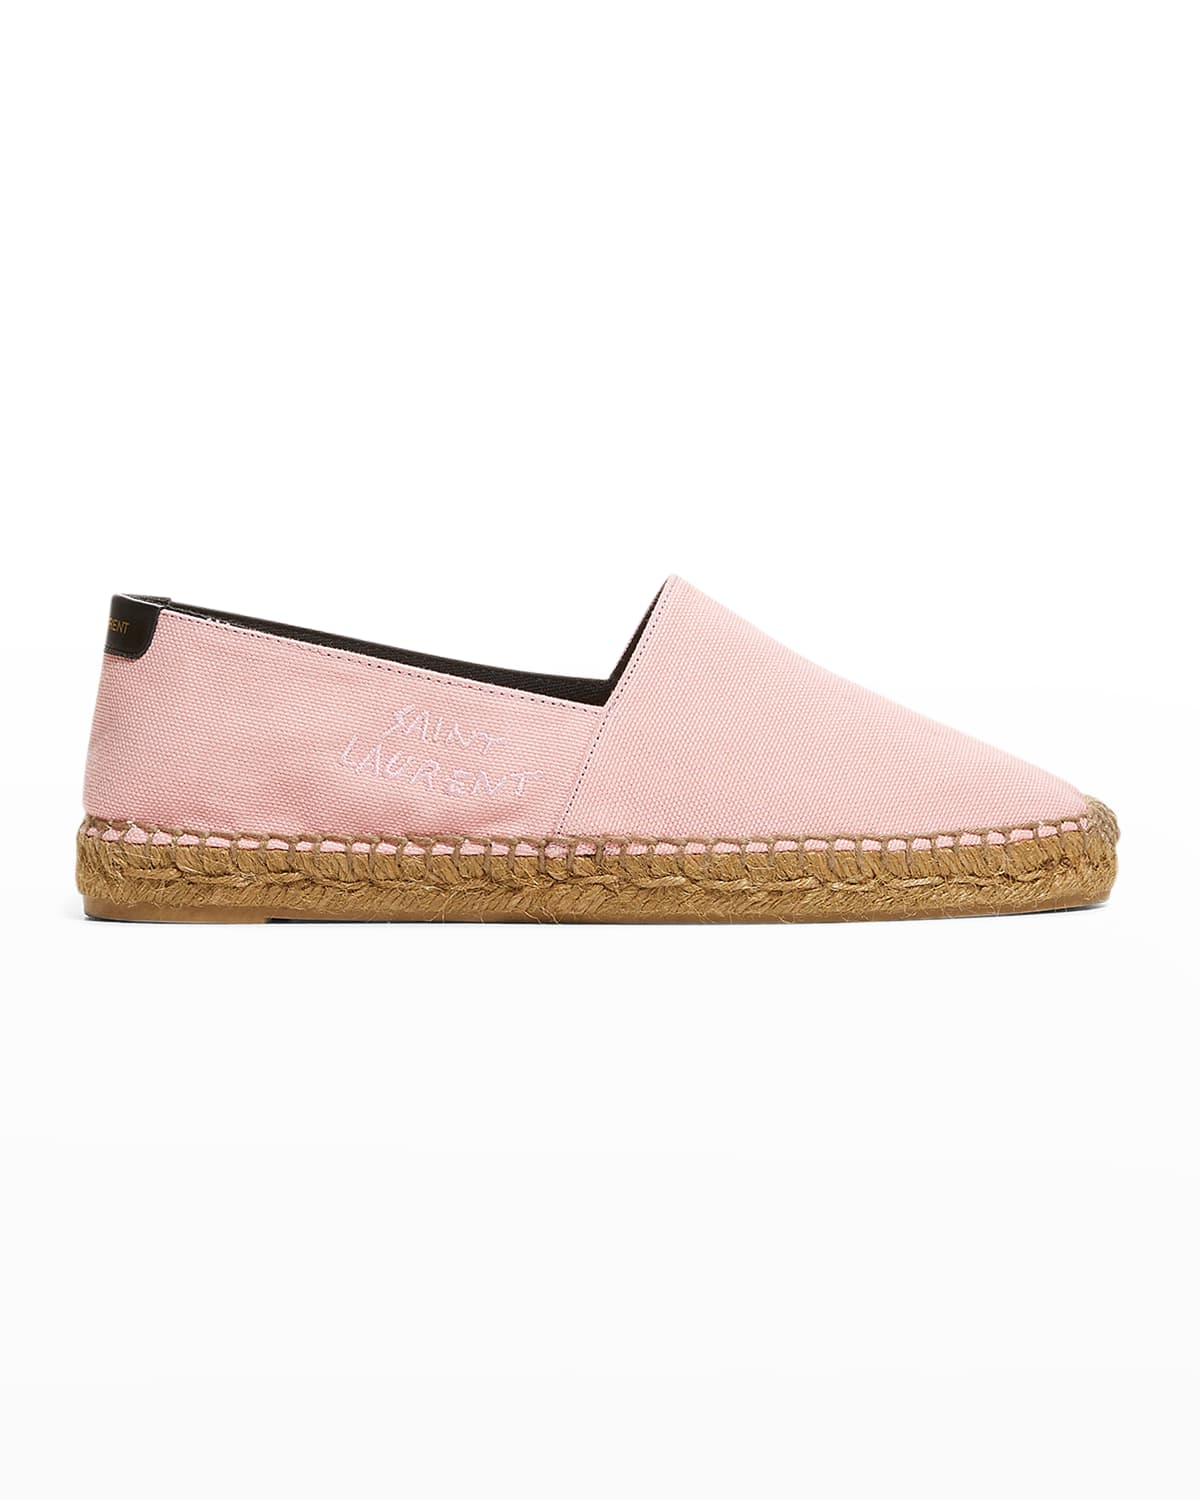 Cotton Flat Espadrille Loafers